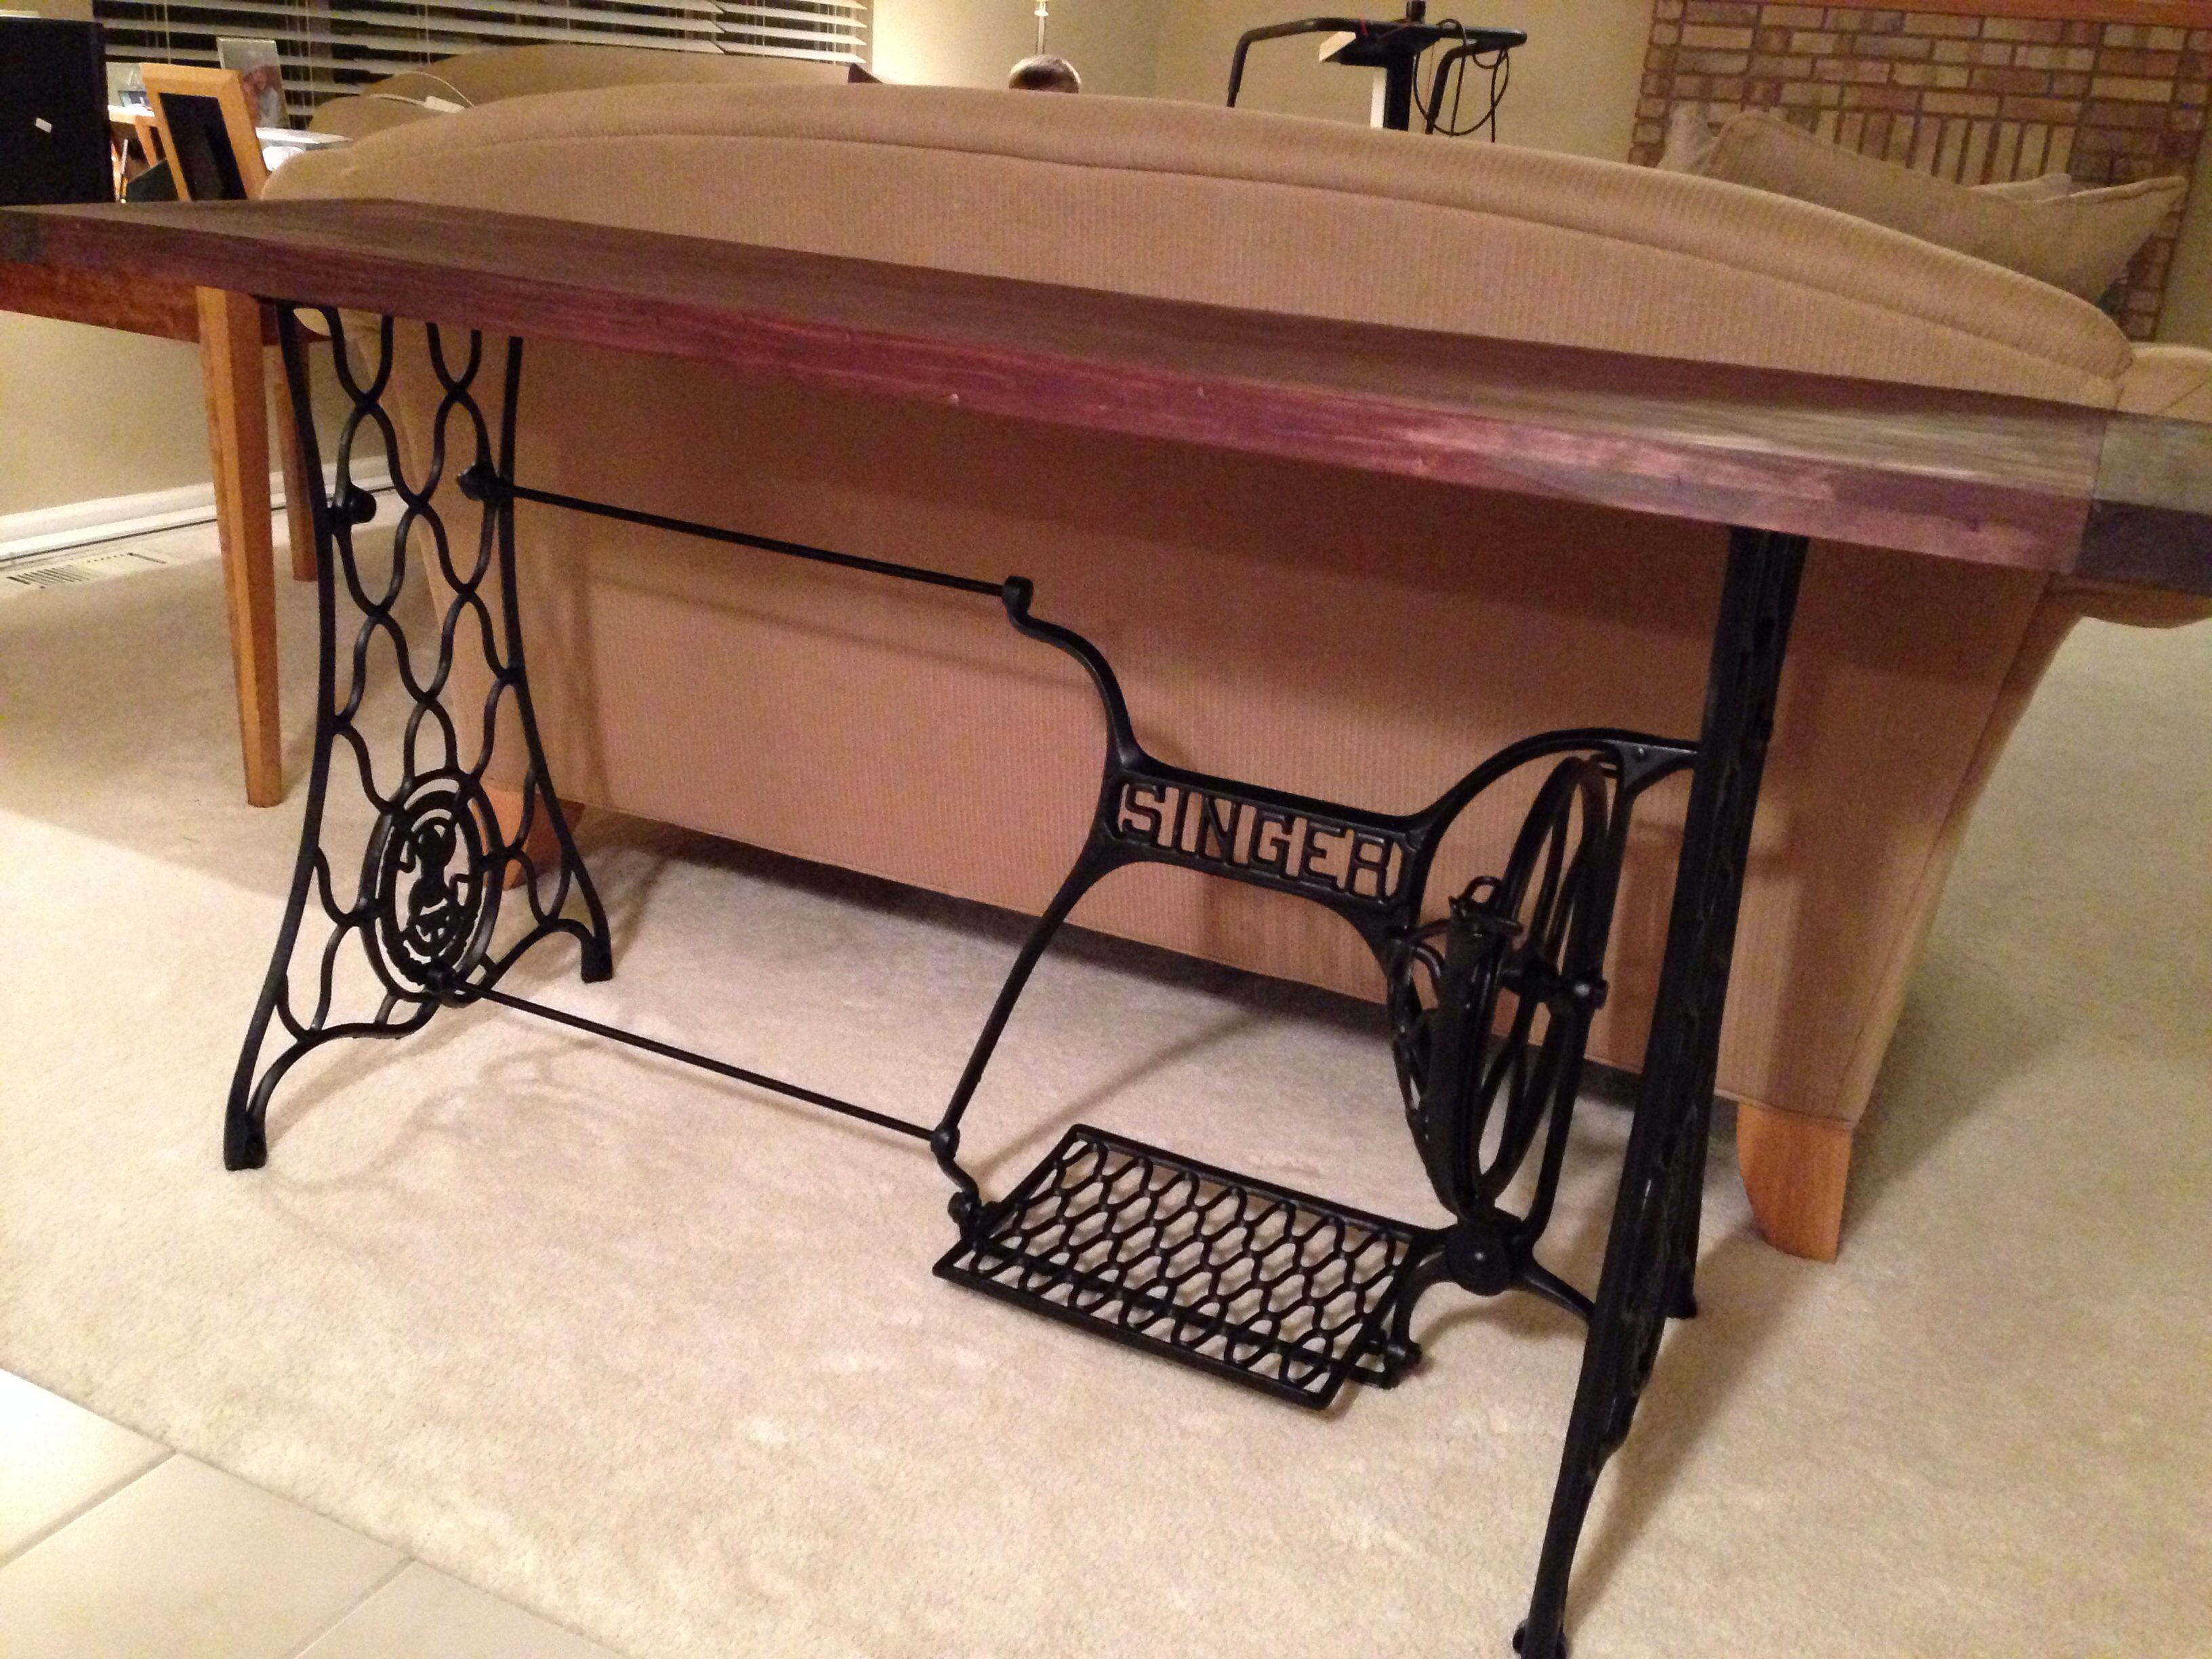 Sofa table from old Singer sewing machine table legs